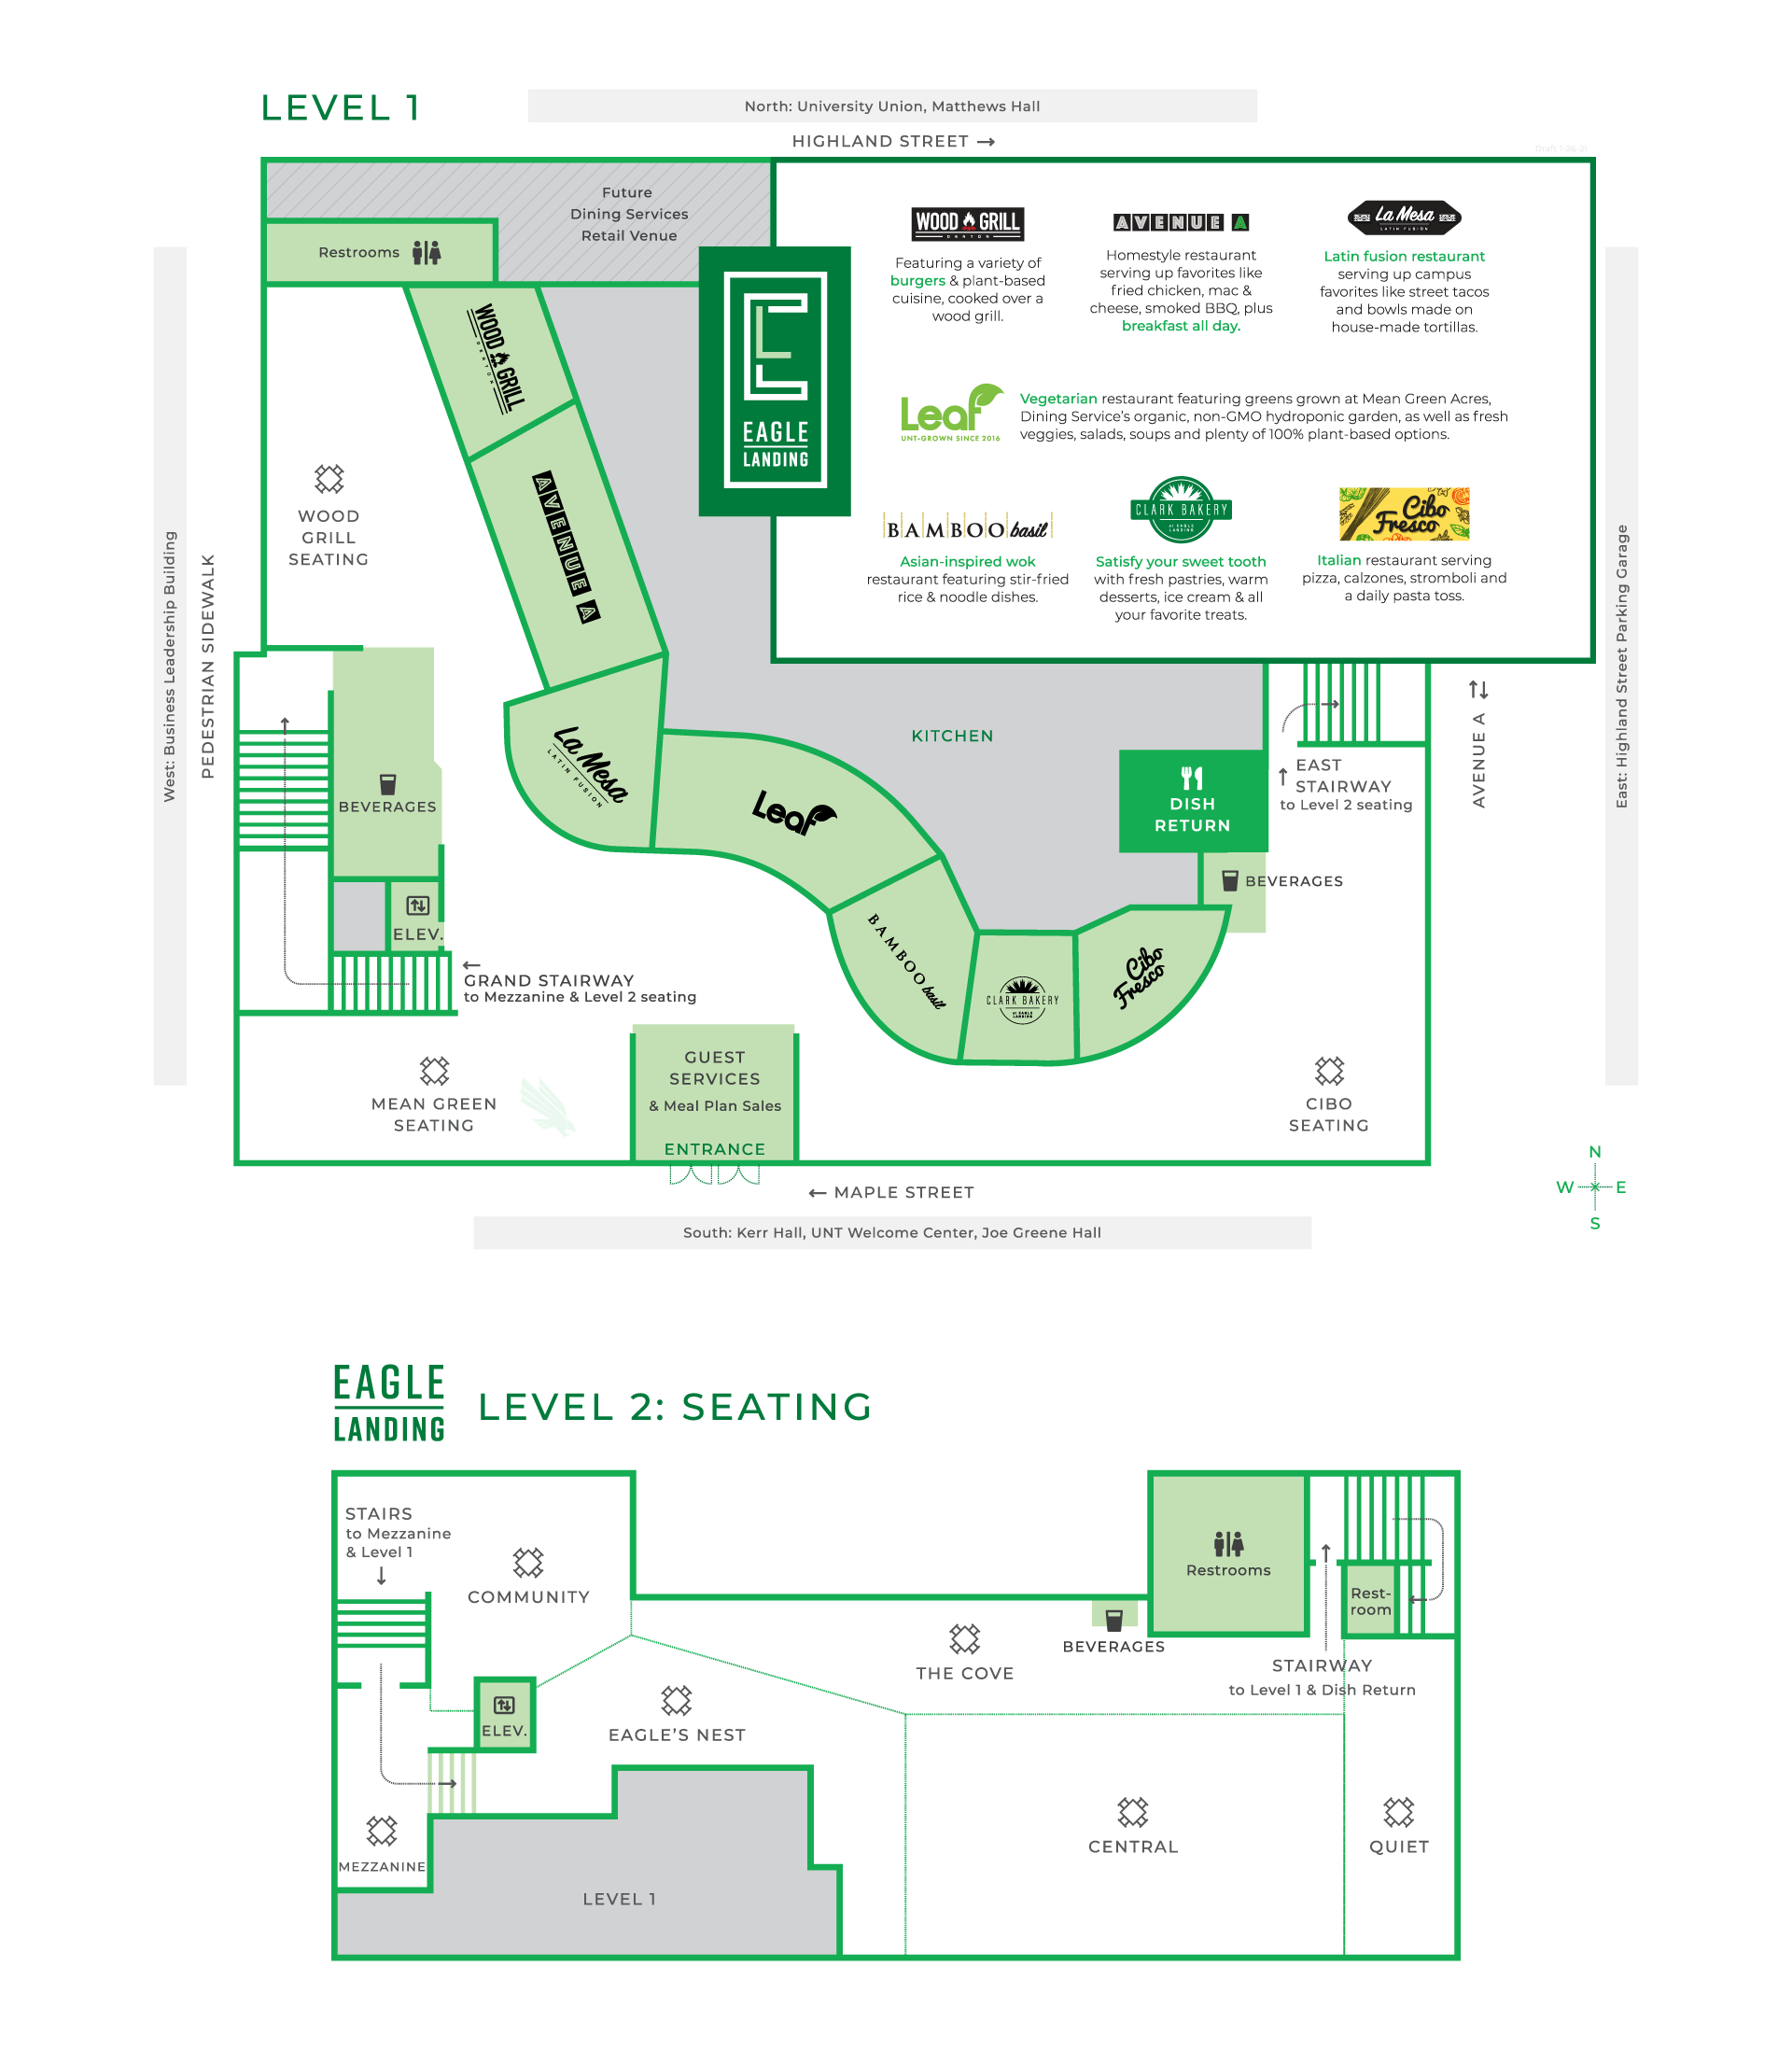 Eagle Landing first and second floor plans showing 7 restaurant concepts and various seating locations, as well as restrooms on each floor and a dish return on the first floor.